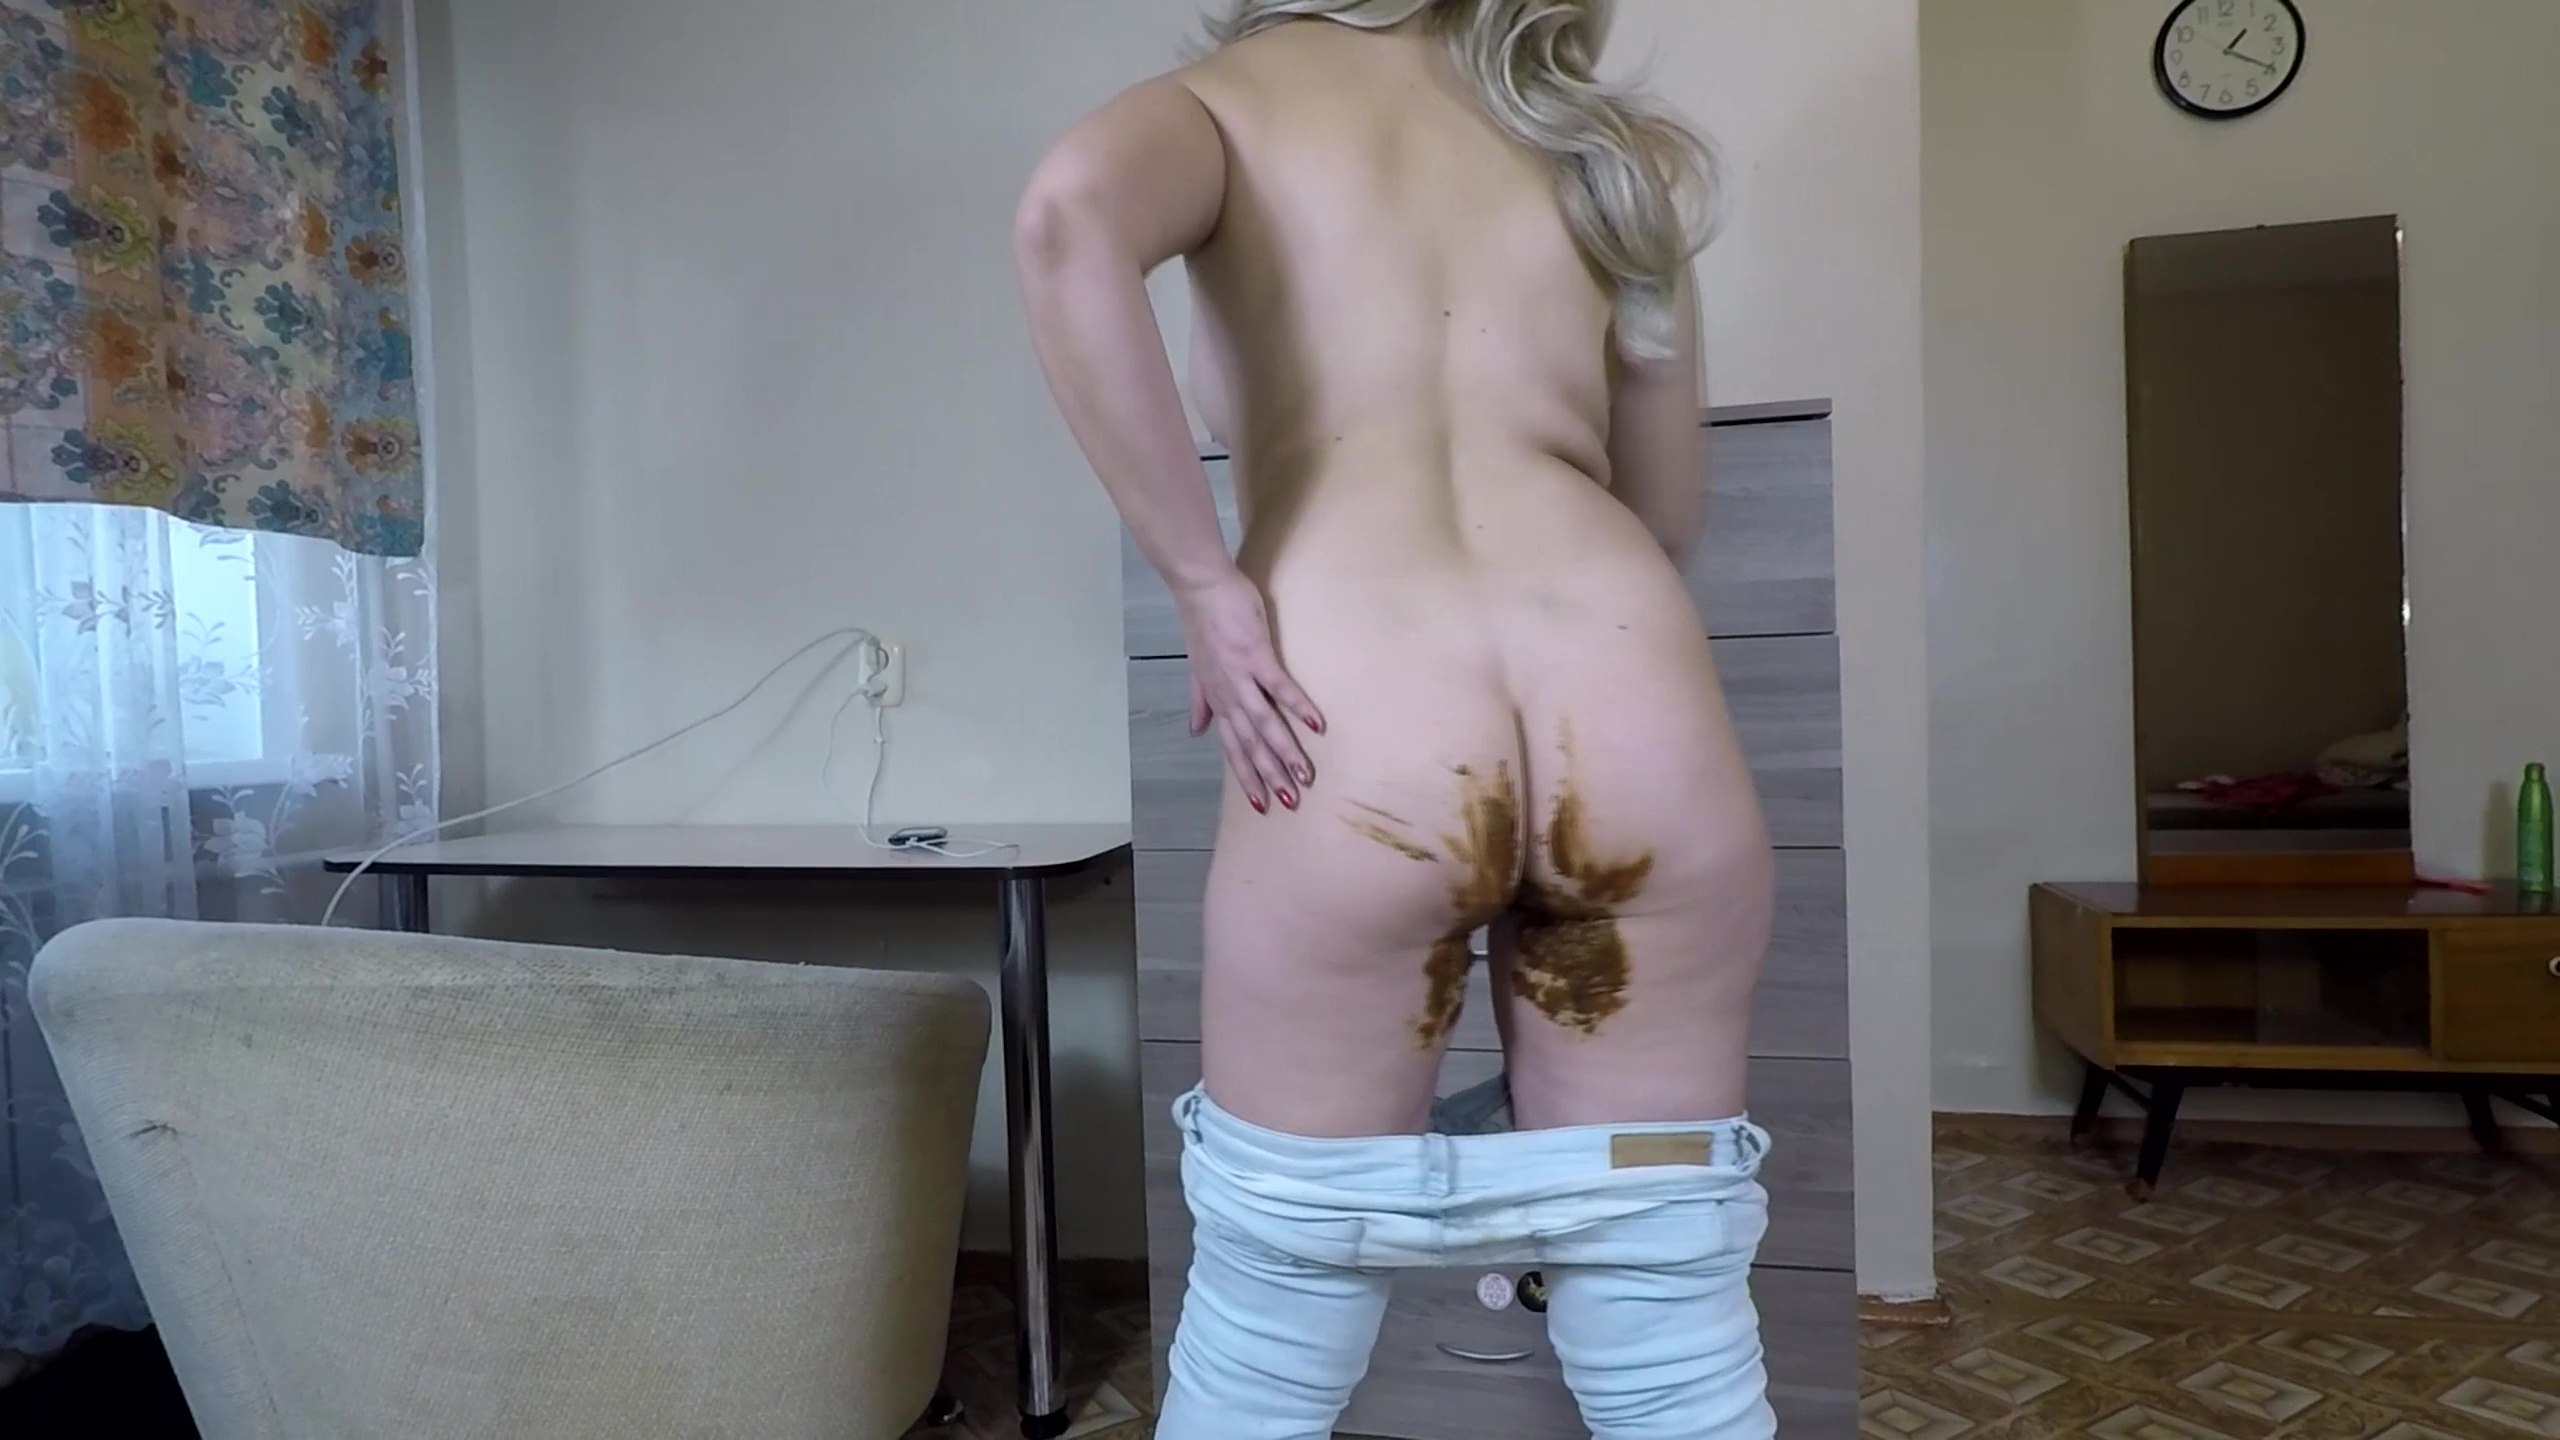 janet - Shit and Smearing in my Jeans